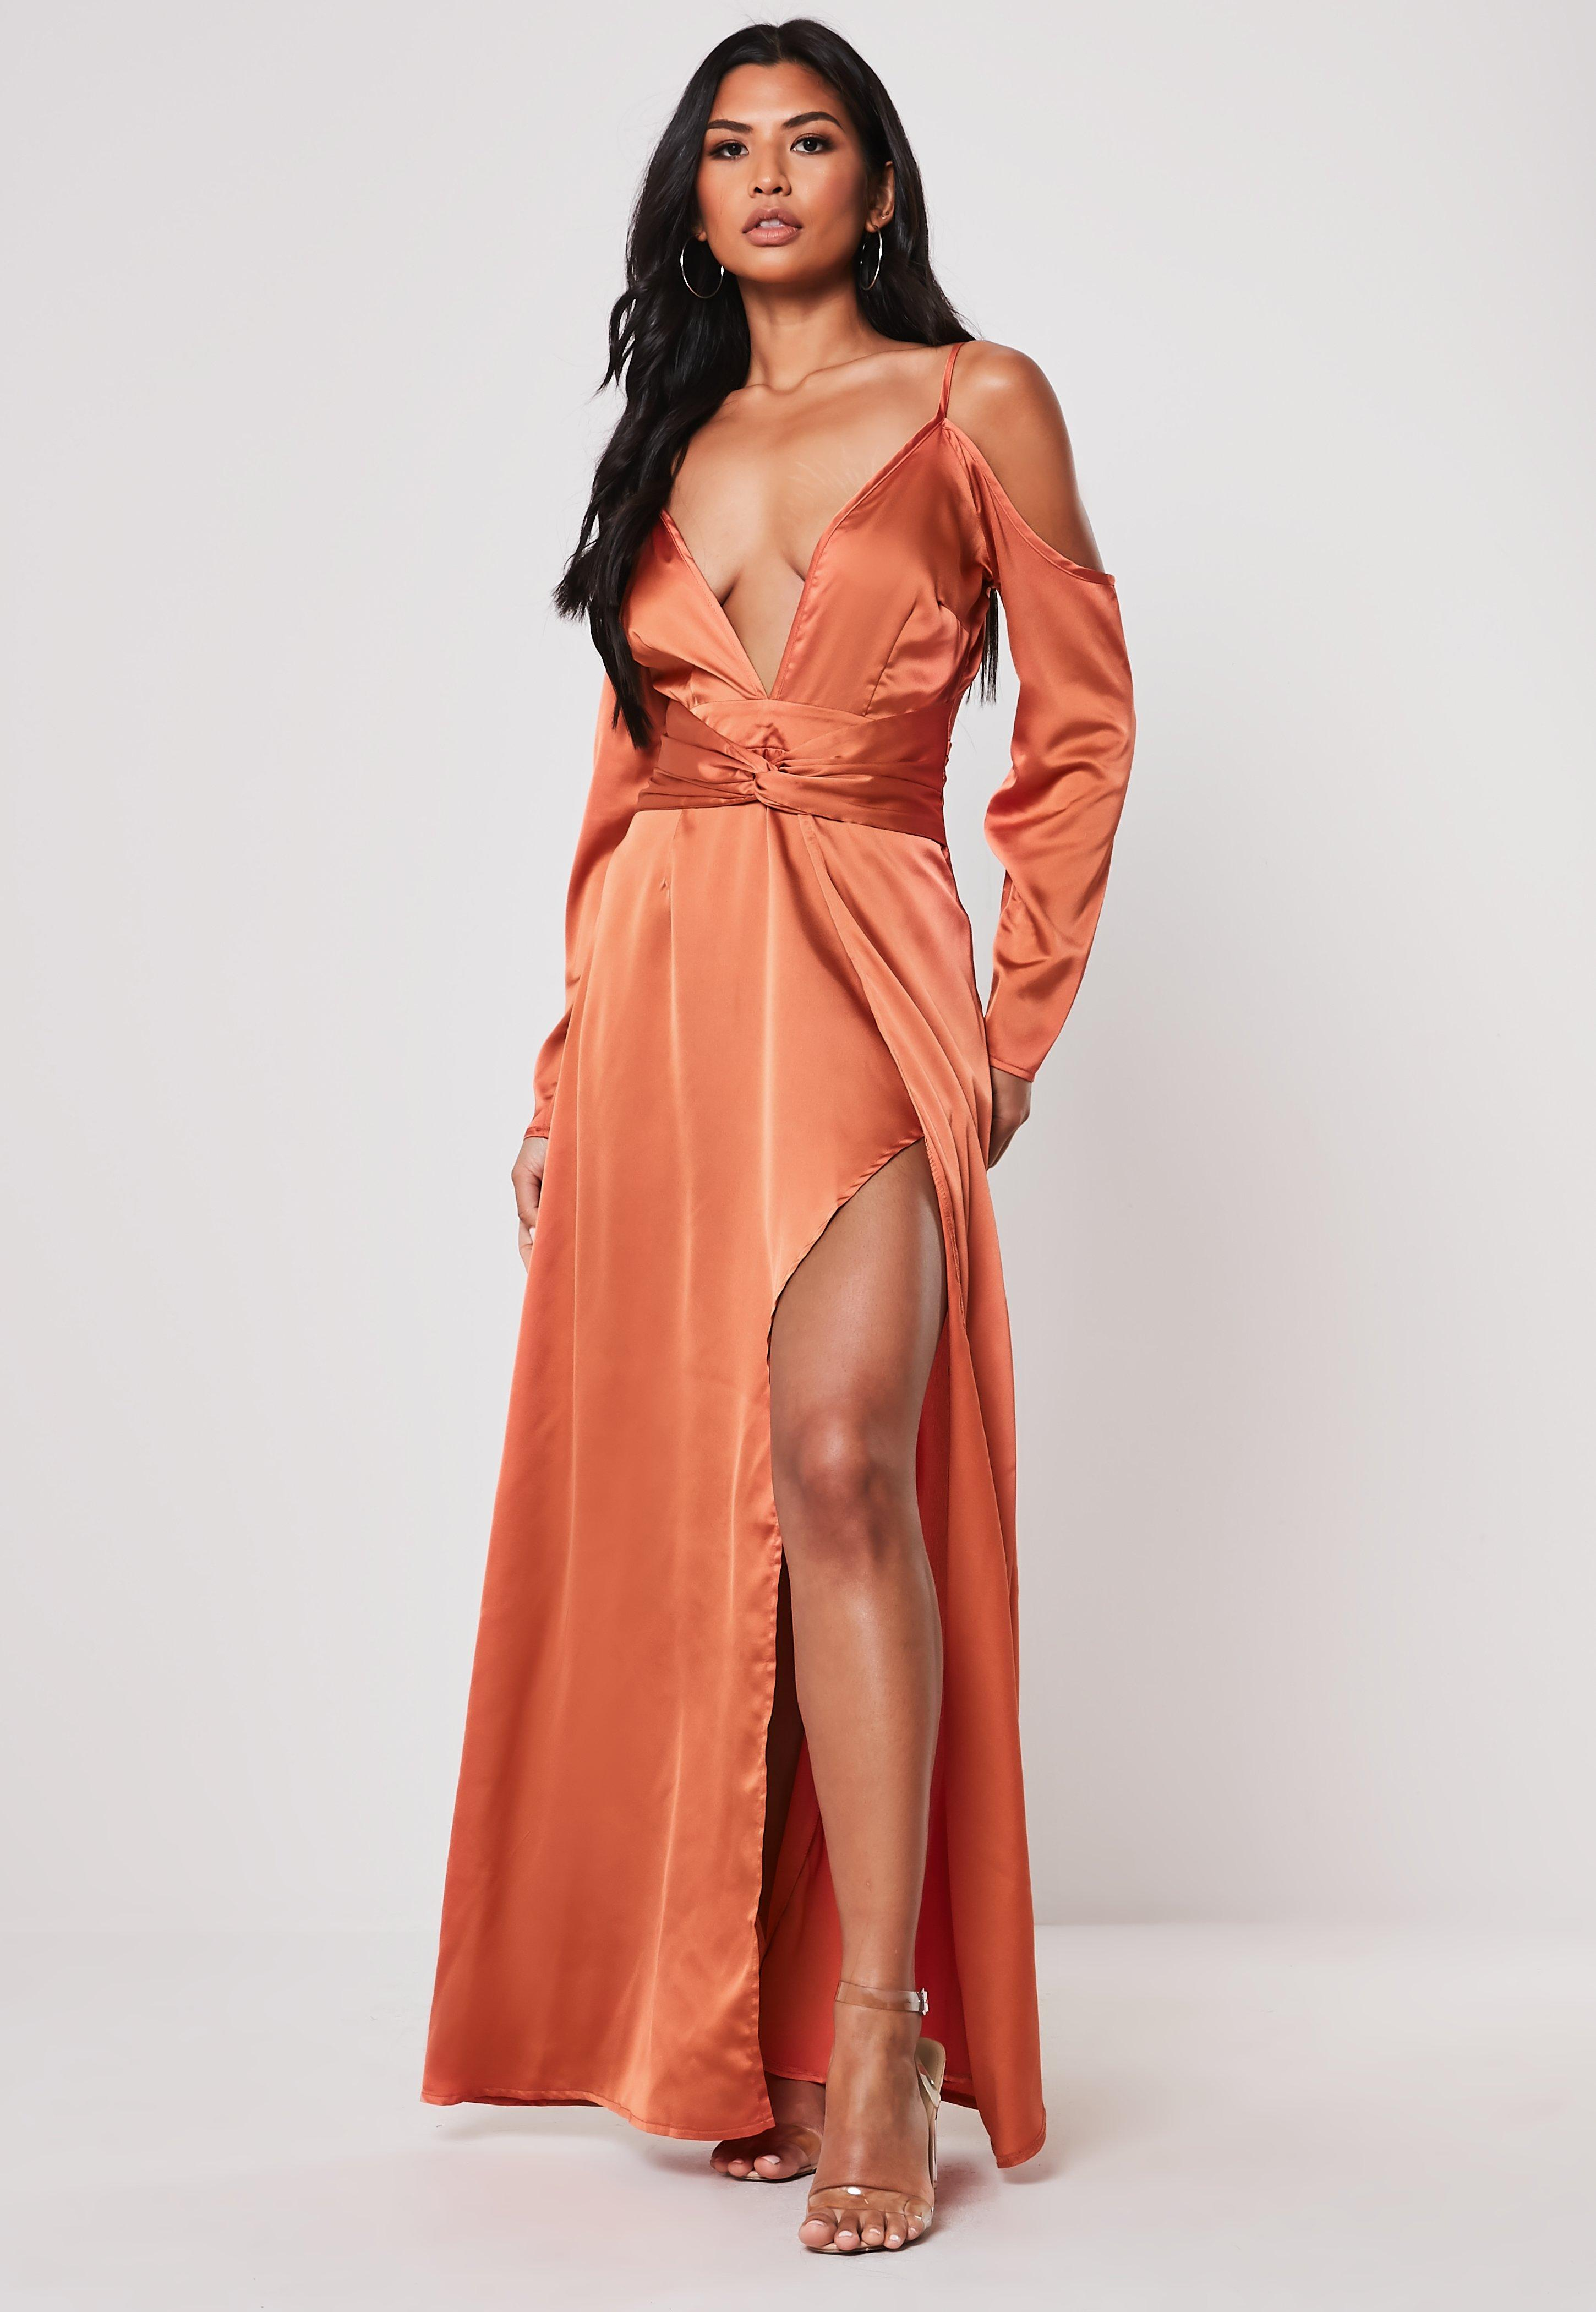 f0d0b892286 Satin Dress - Silky Dresses Online